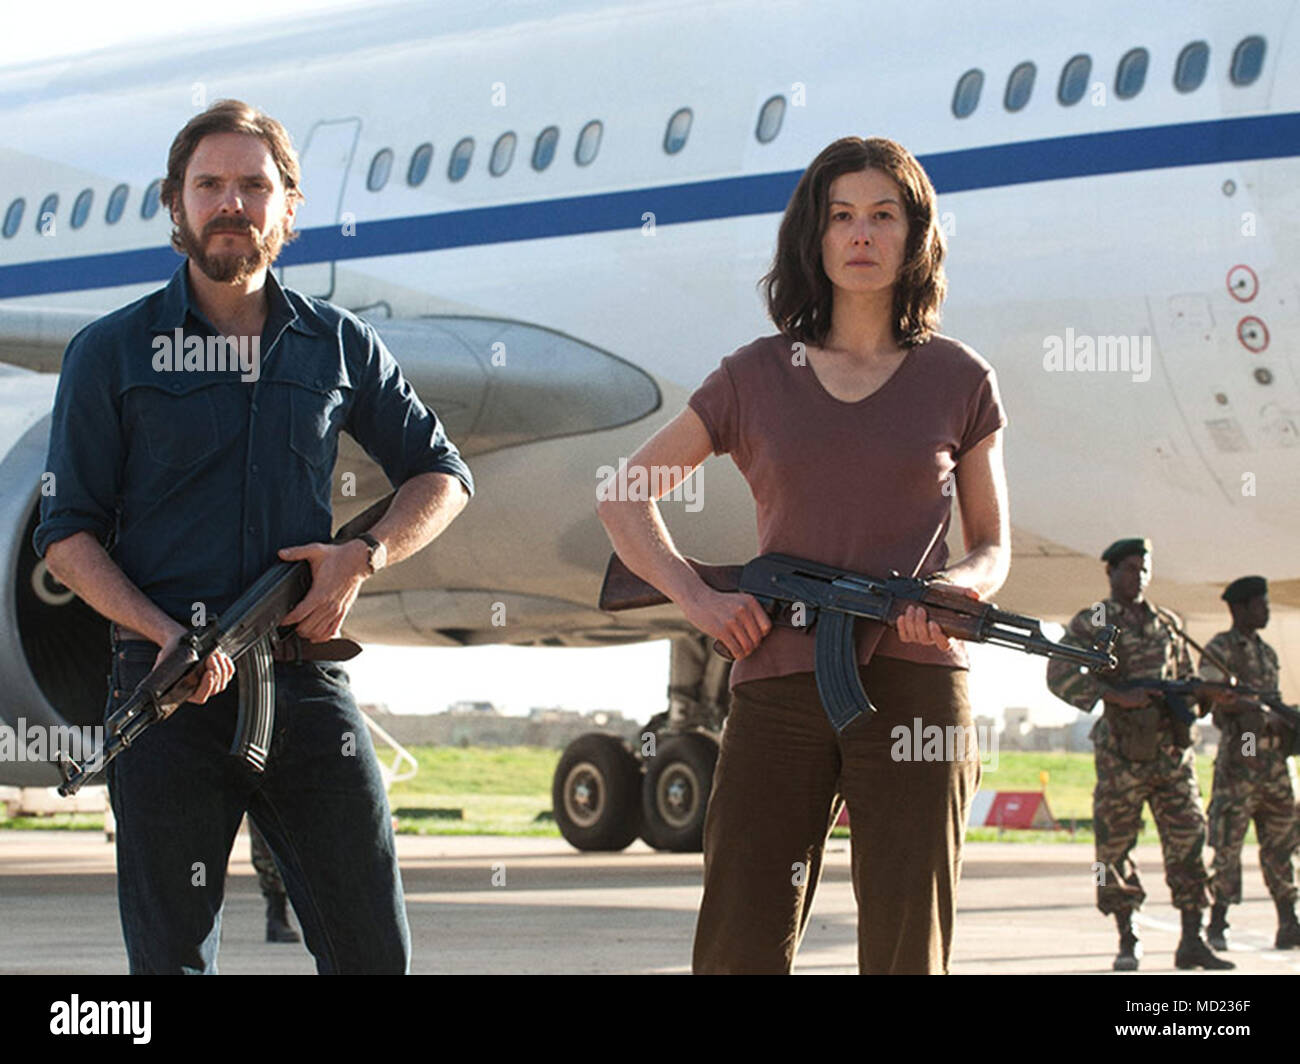 7 DAYS IN ENTEBBE (2018)  DANIEL BRUHL  ROSAMUND PIKE  JACK PADILHA (DIR)  LIAM DANIEL/FOCUS FEATURES/MOVIESTORE COLLECTION LTD - Stock Image